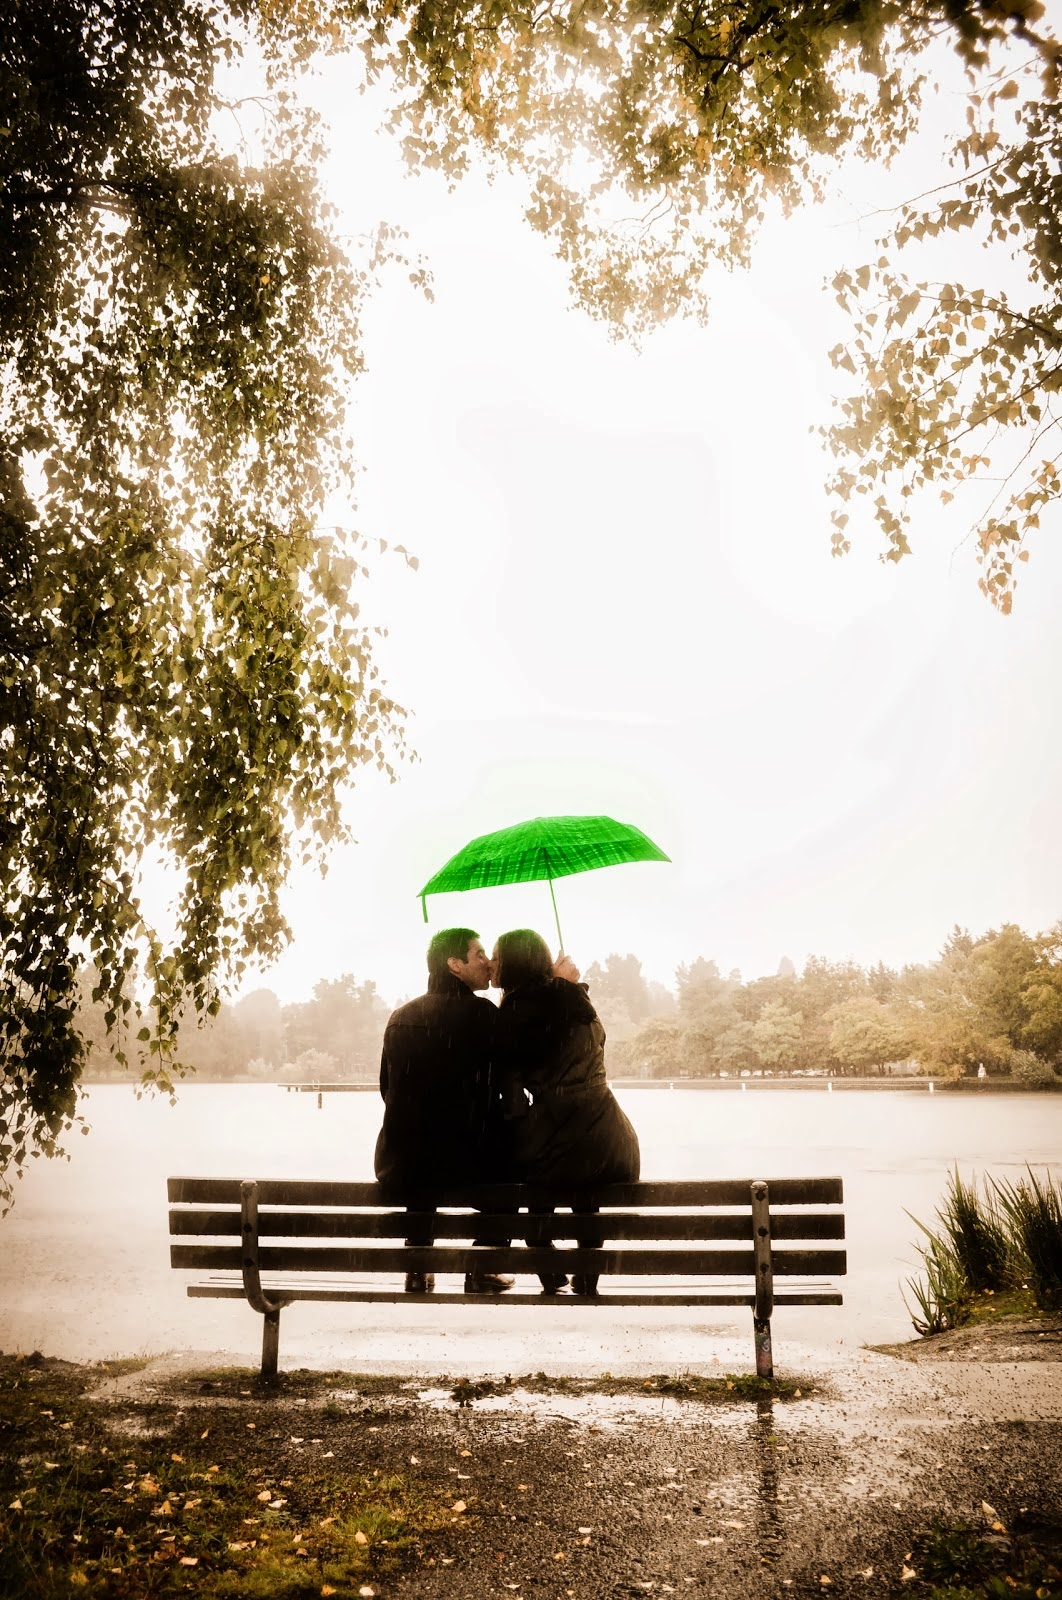 Love under an umbrella.  Posted by Patricia Stimac.